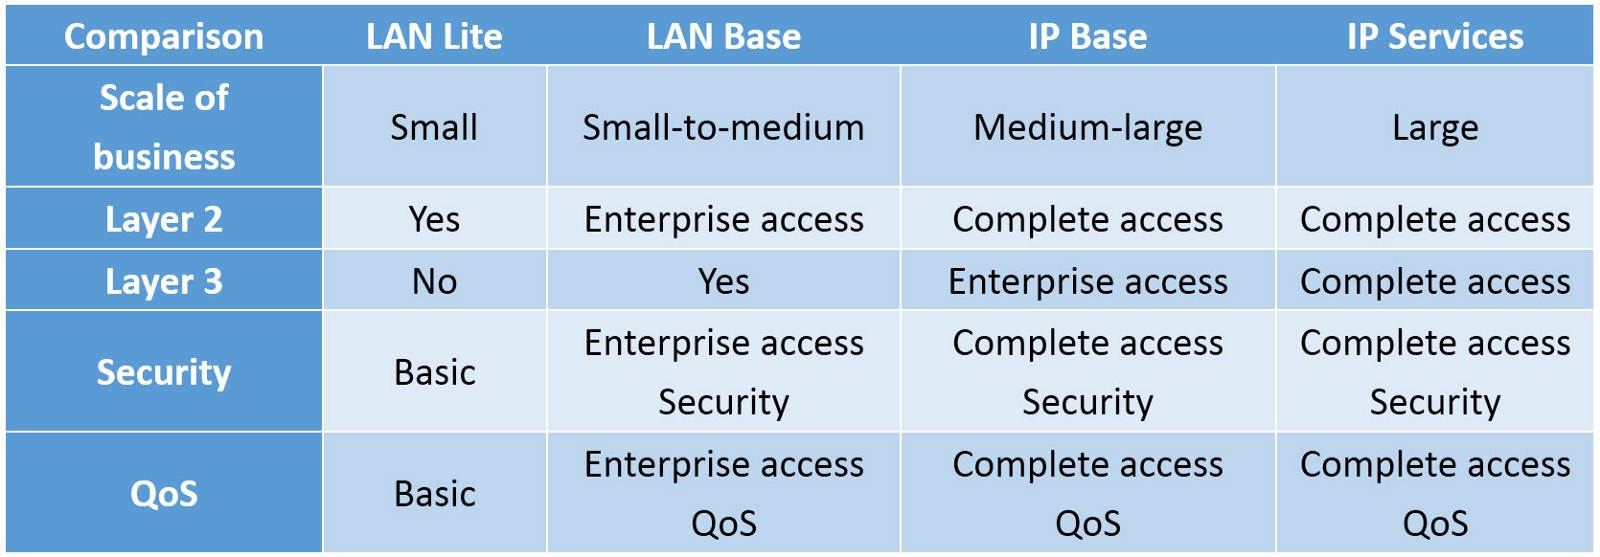 Tìm hiểu Cisco IOS license: Lan lite, Lan base, IP base, IP services